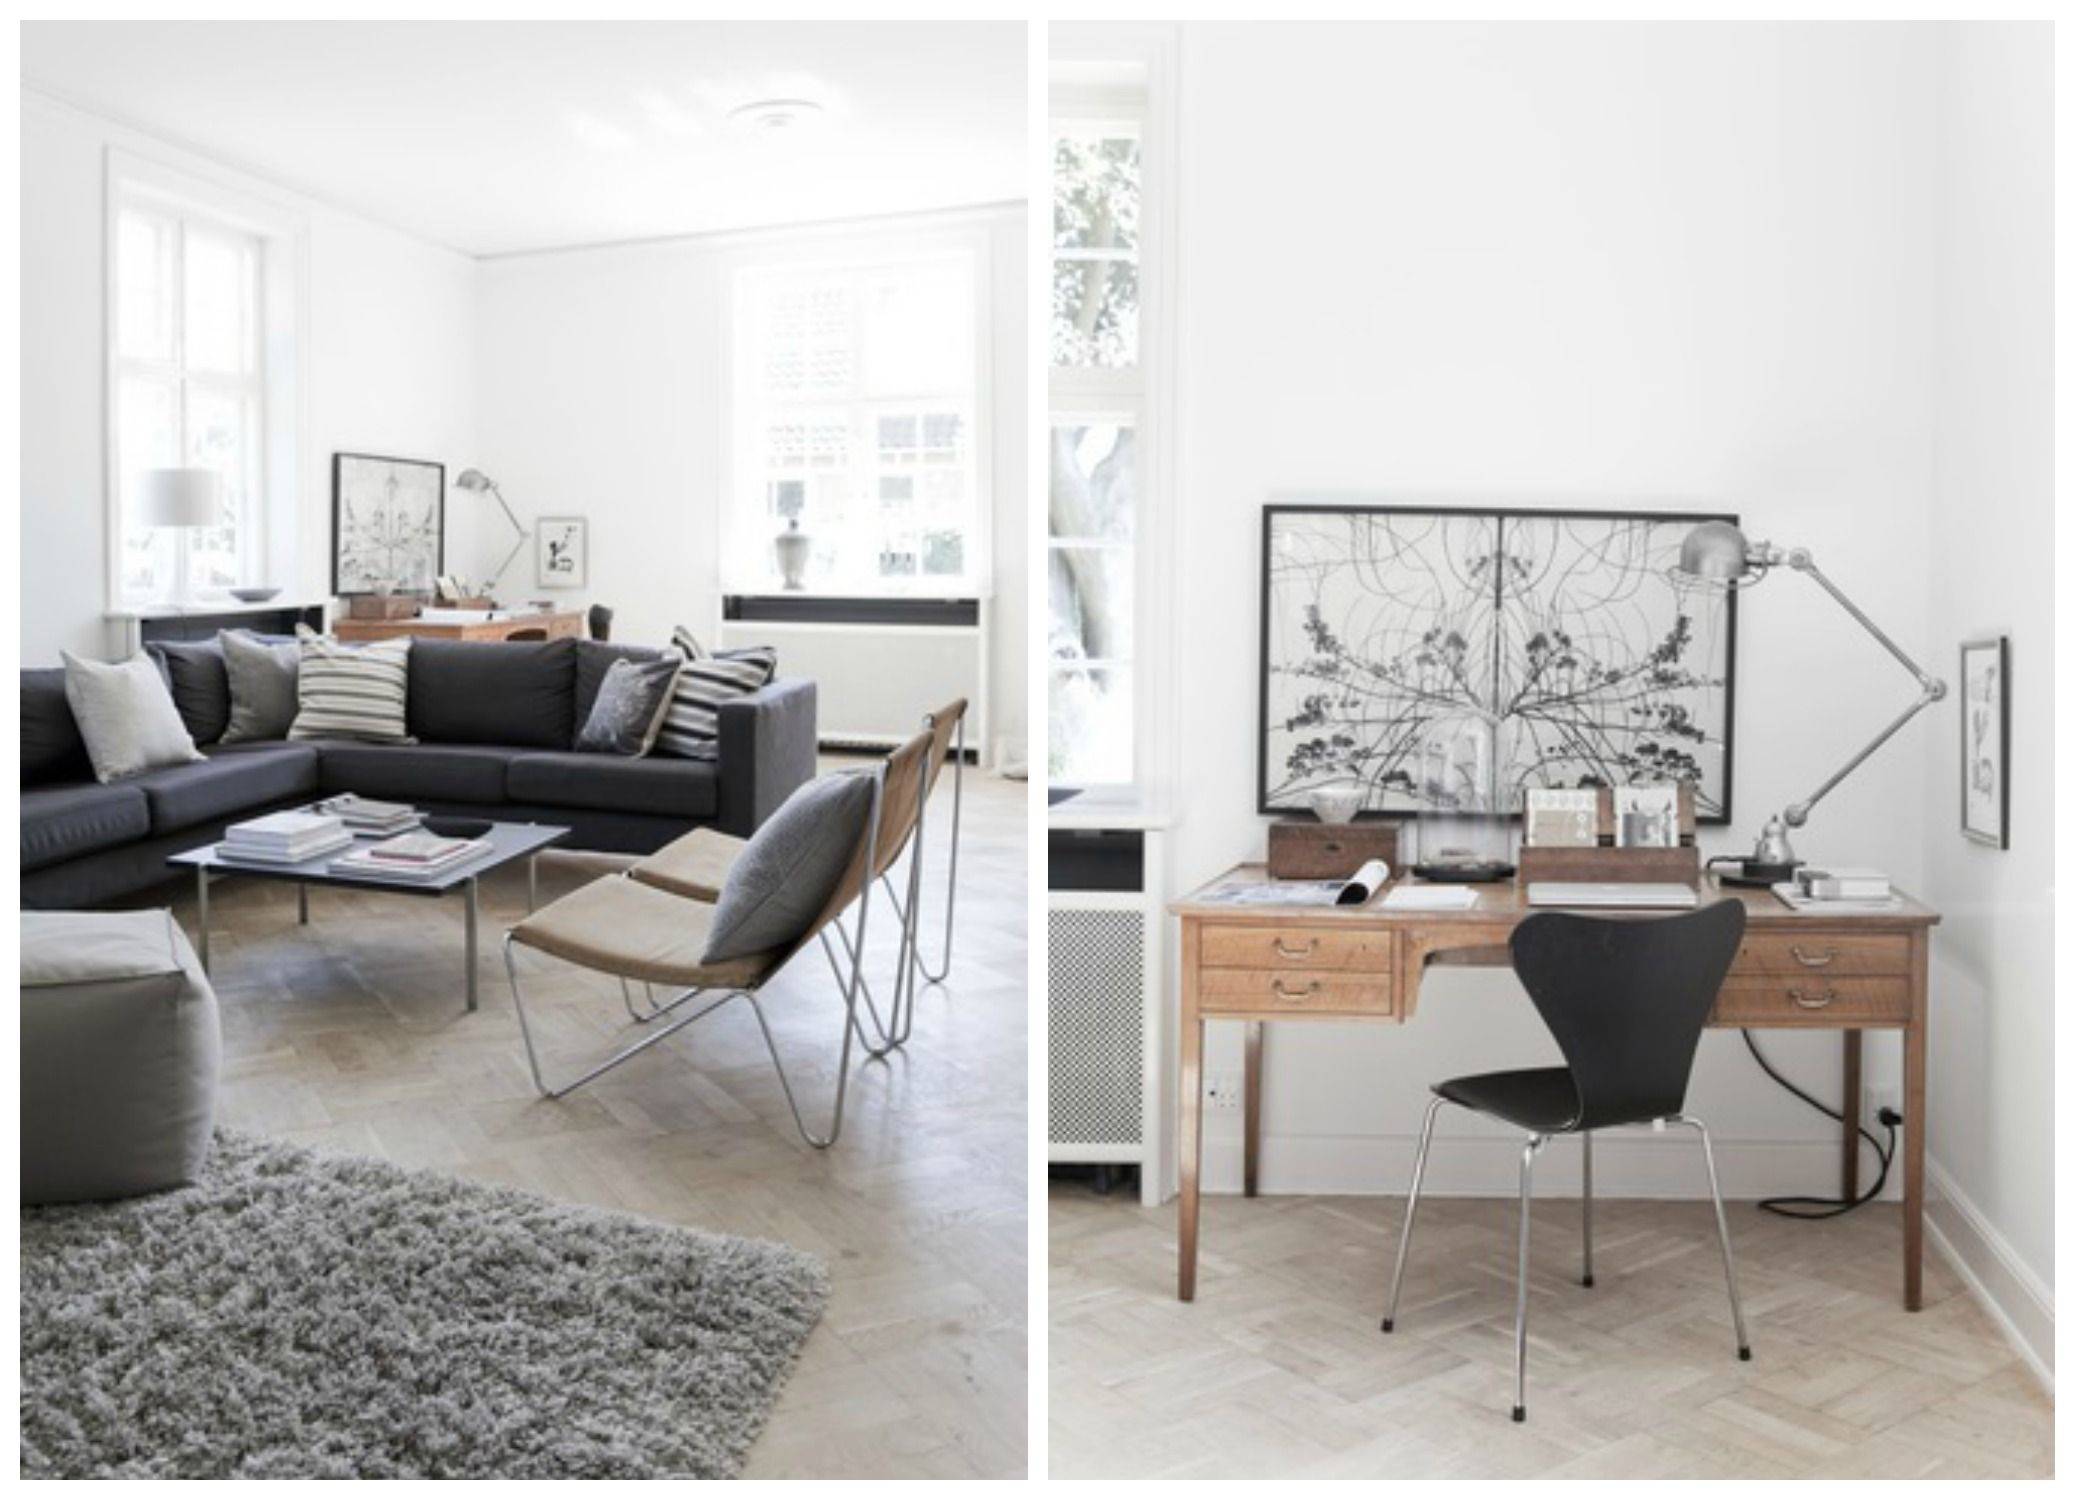 Light filled living room, clean and simple decor | The Dream Haus ...